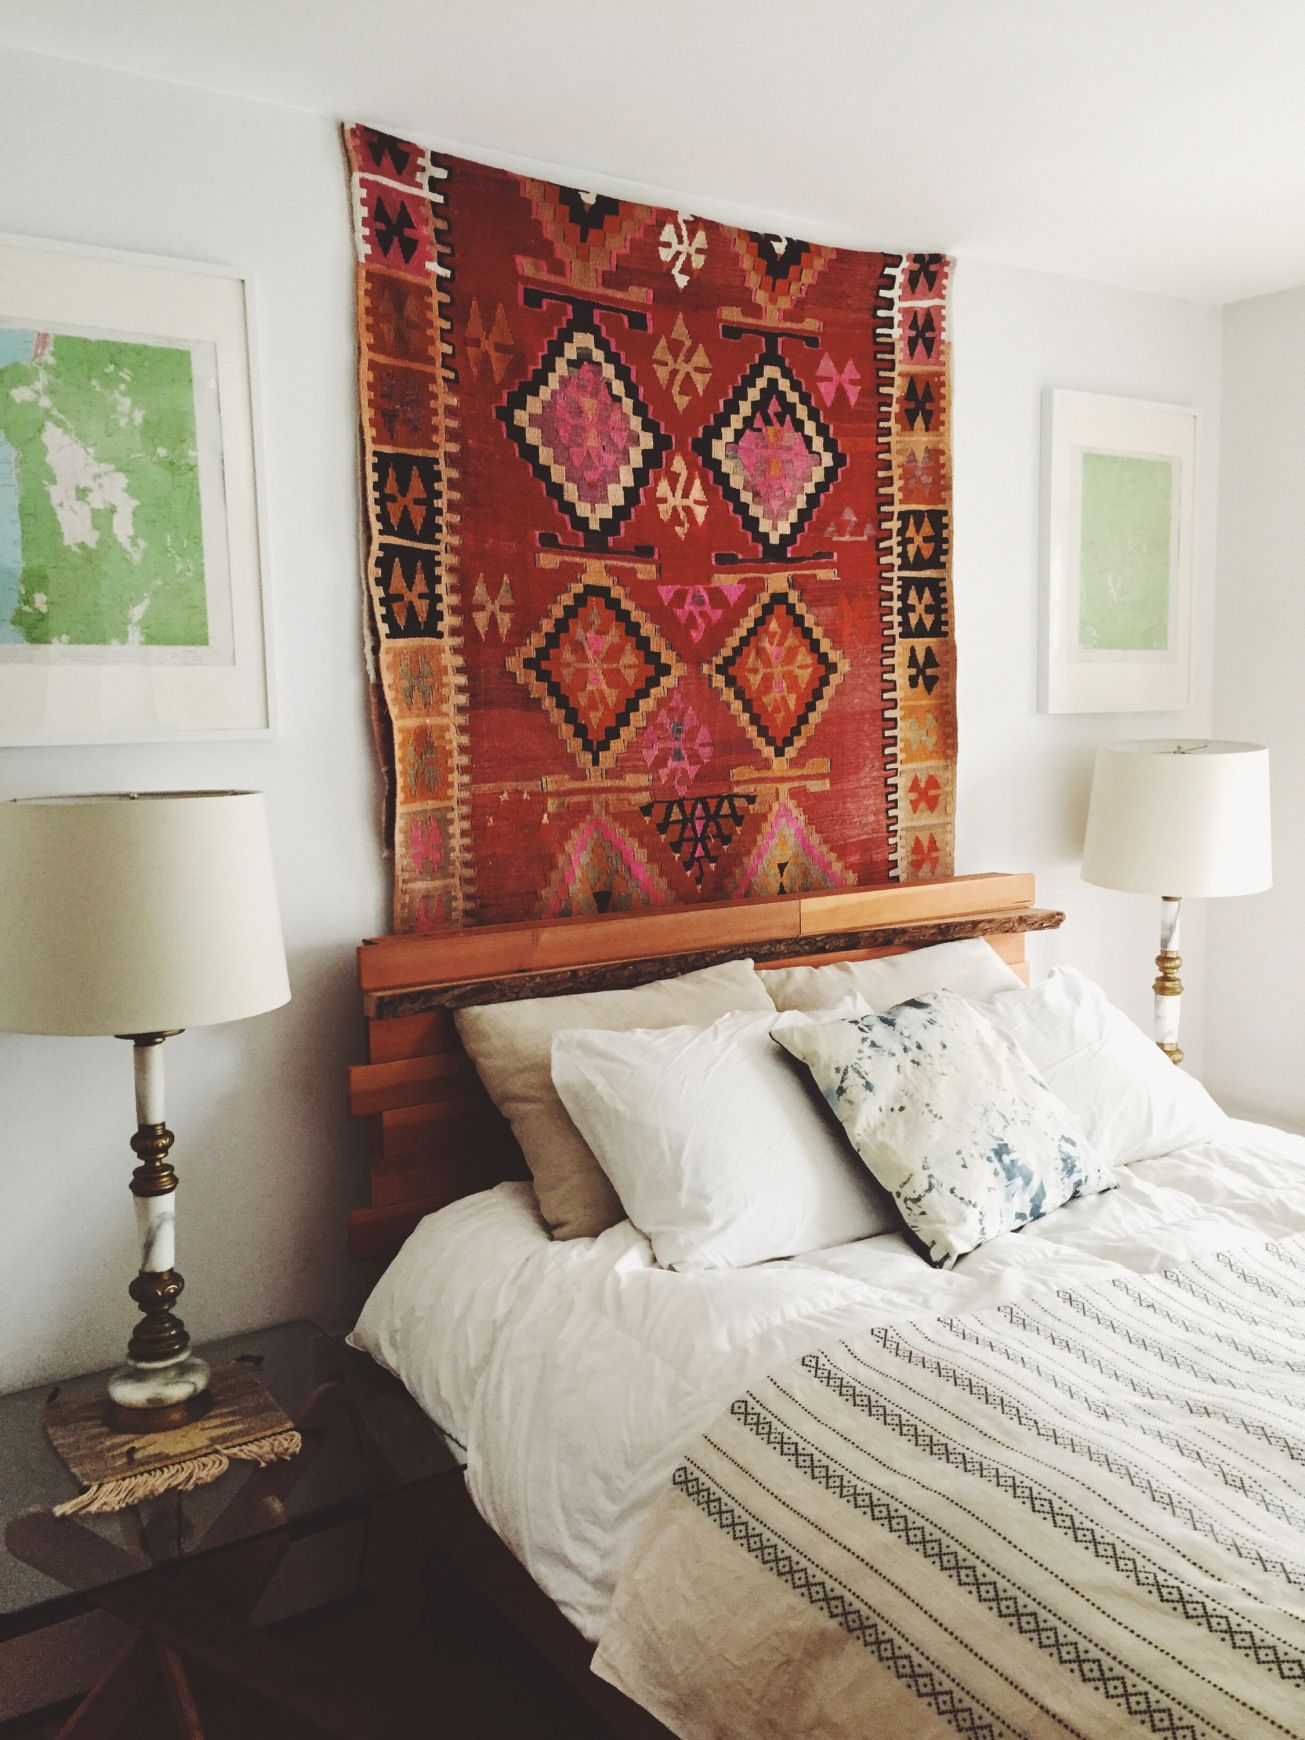 Kilim Rugs Add Contrast And Definition To The Spaces With Their Beautiful  Unique Pattern And Bright